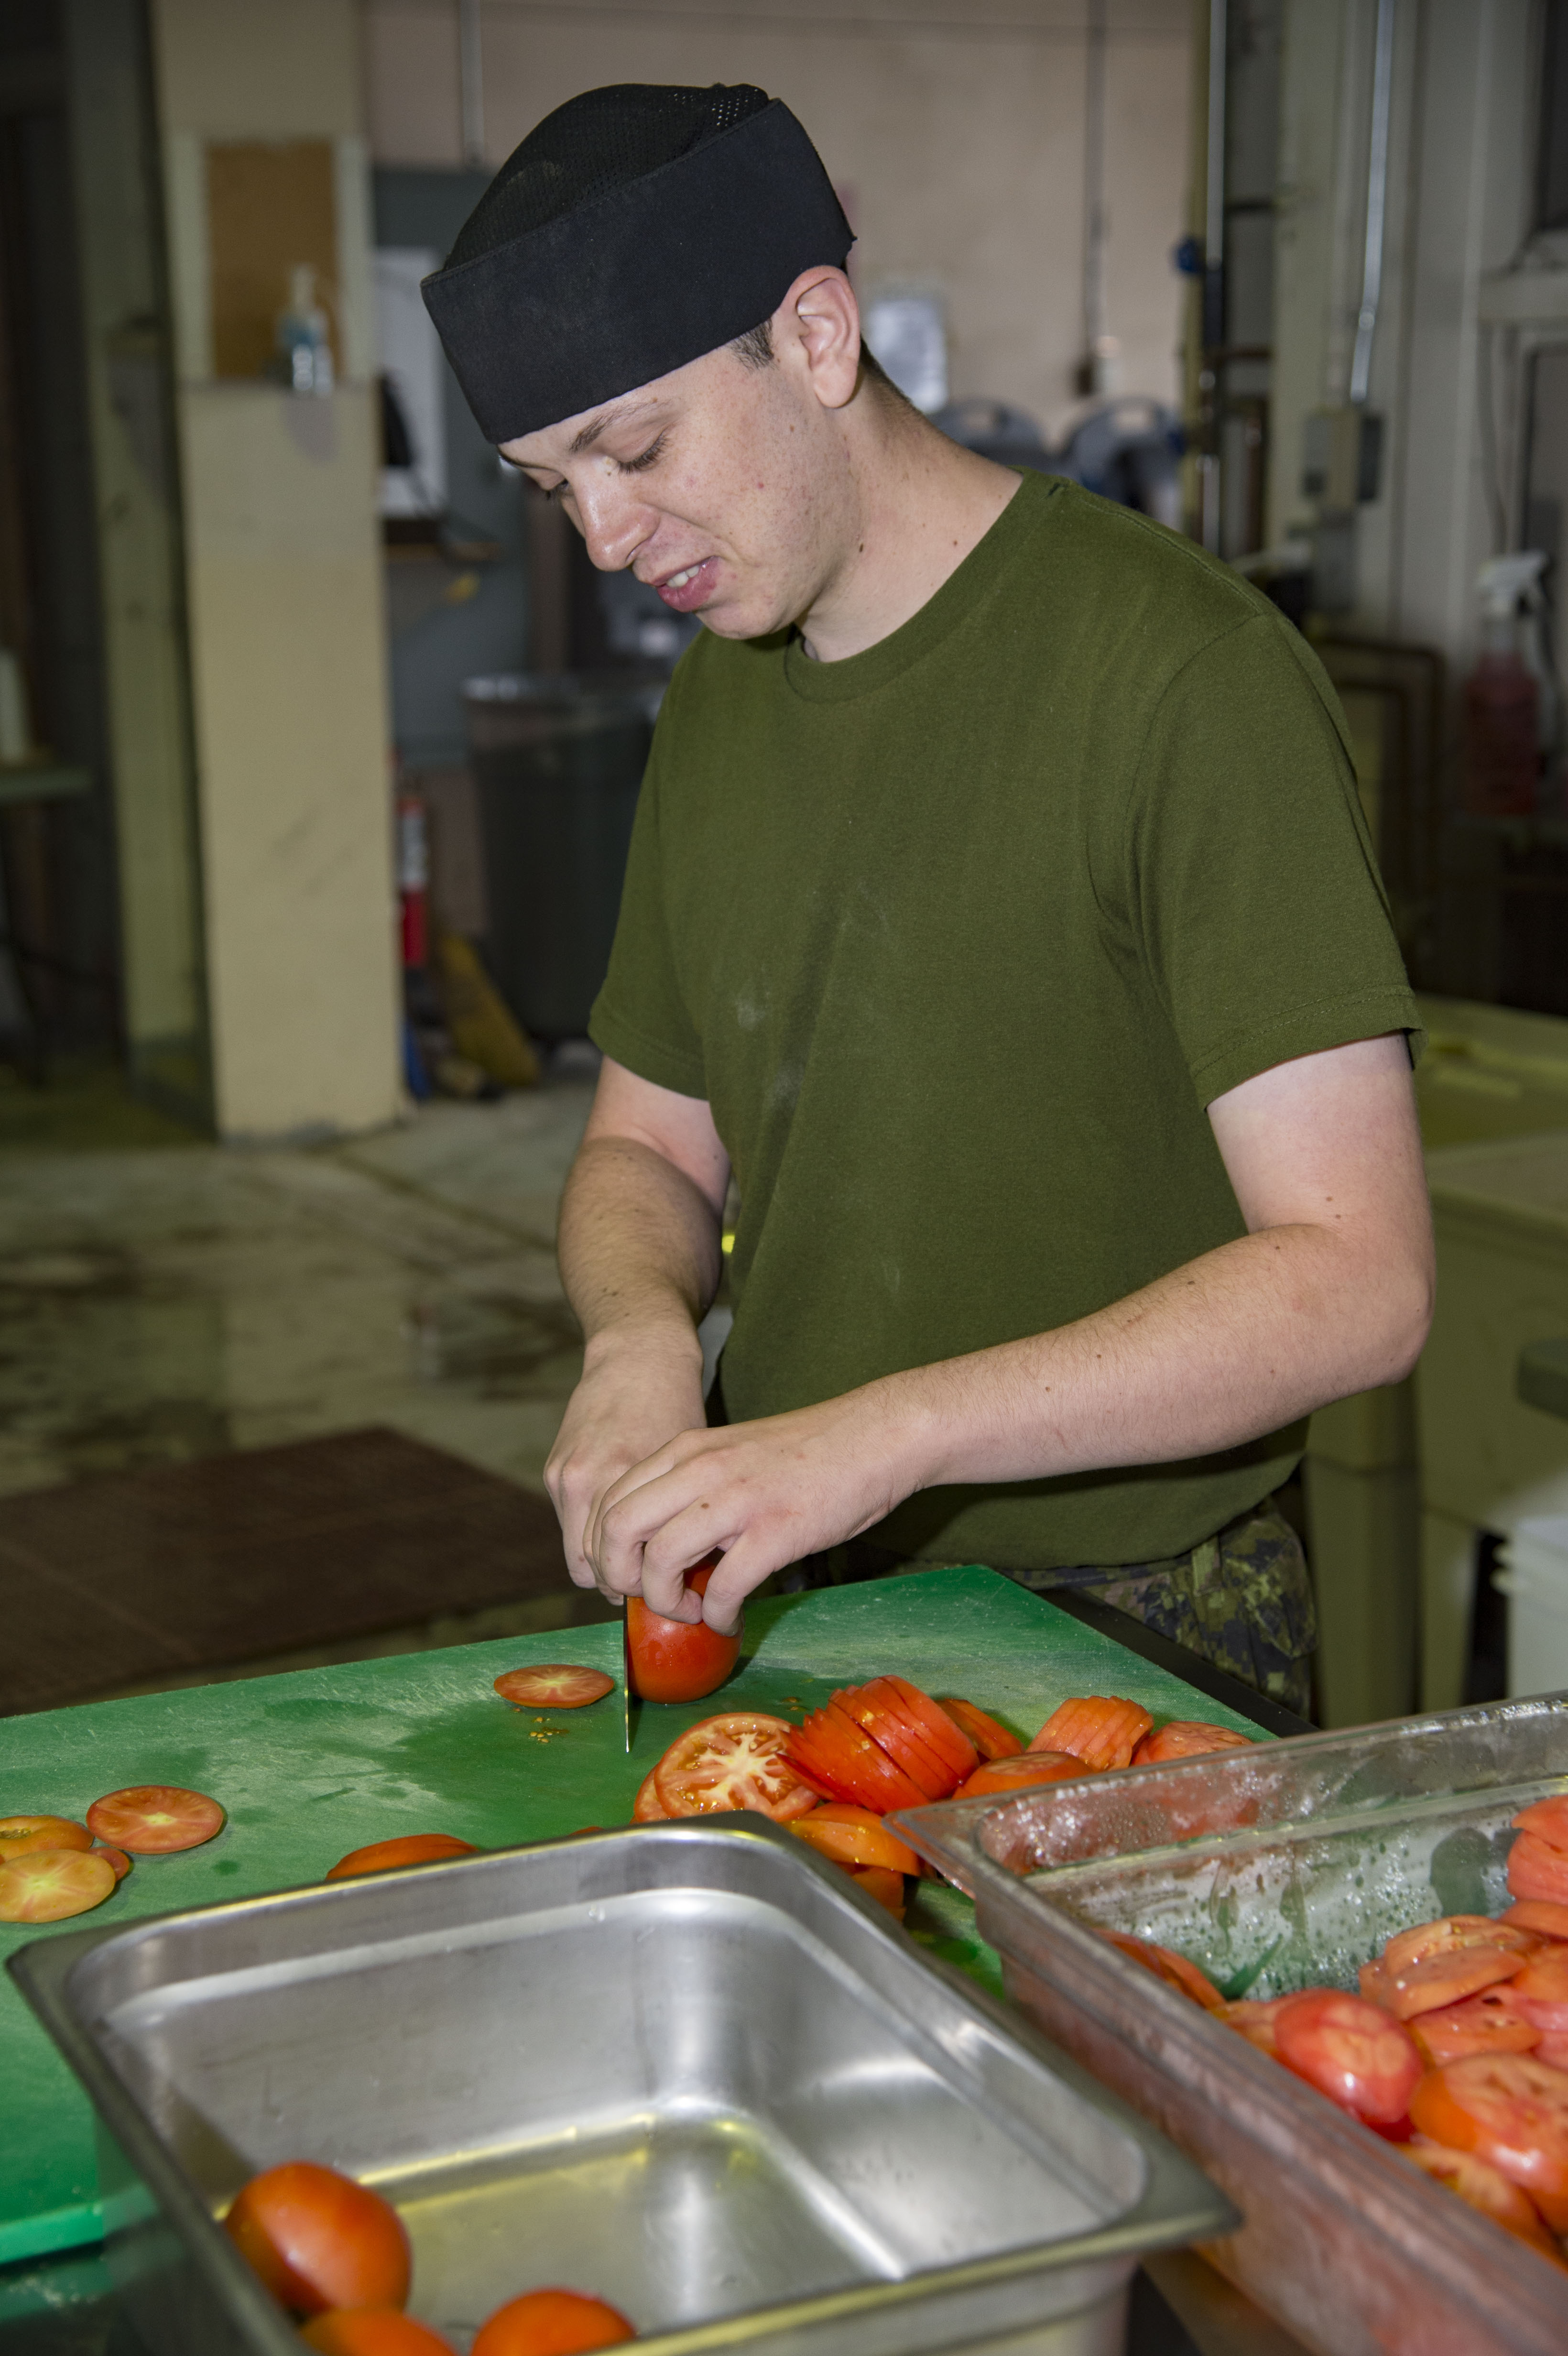 A man in green T-shirt and a black cap slices tomatoes.